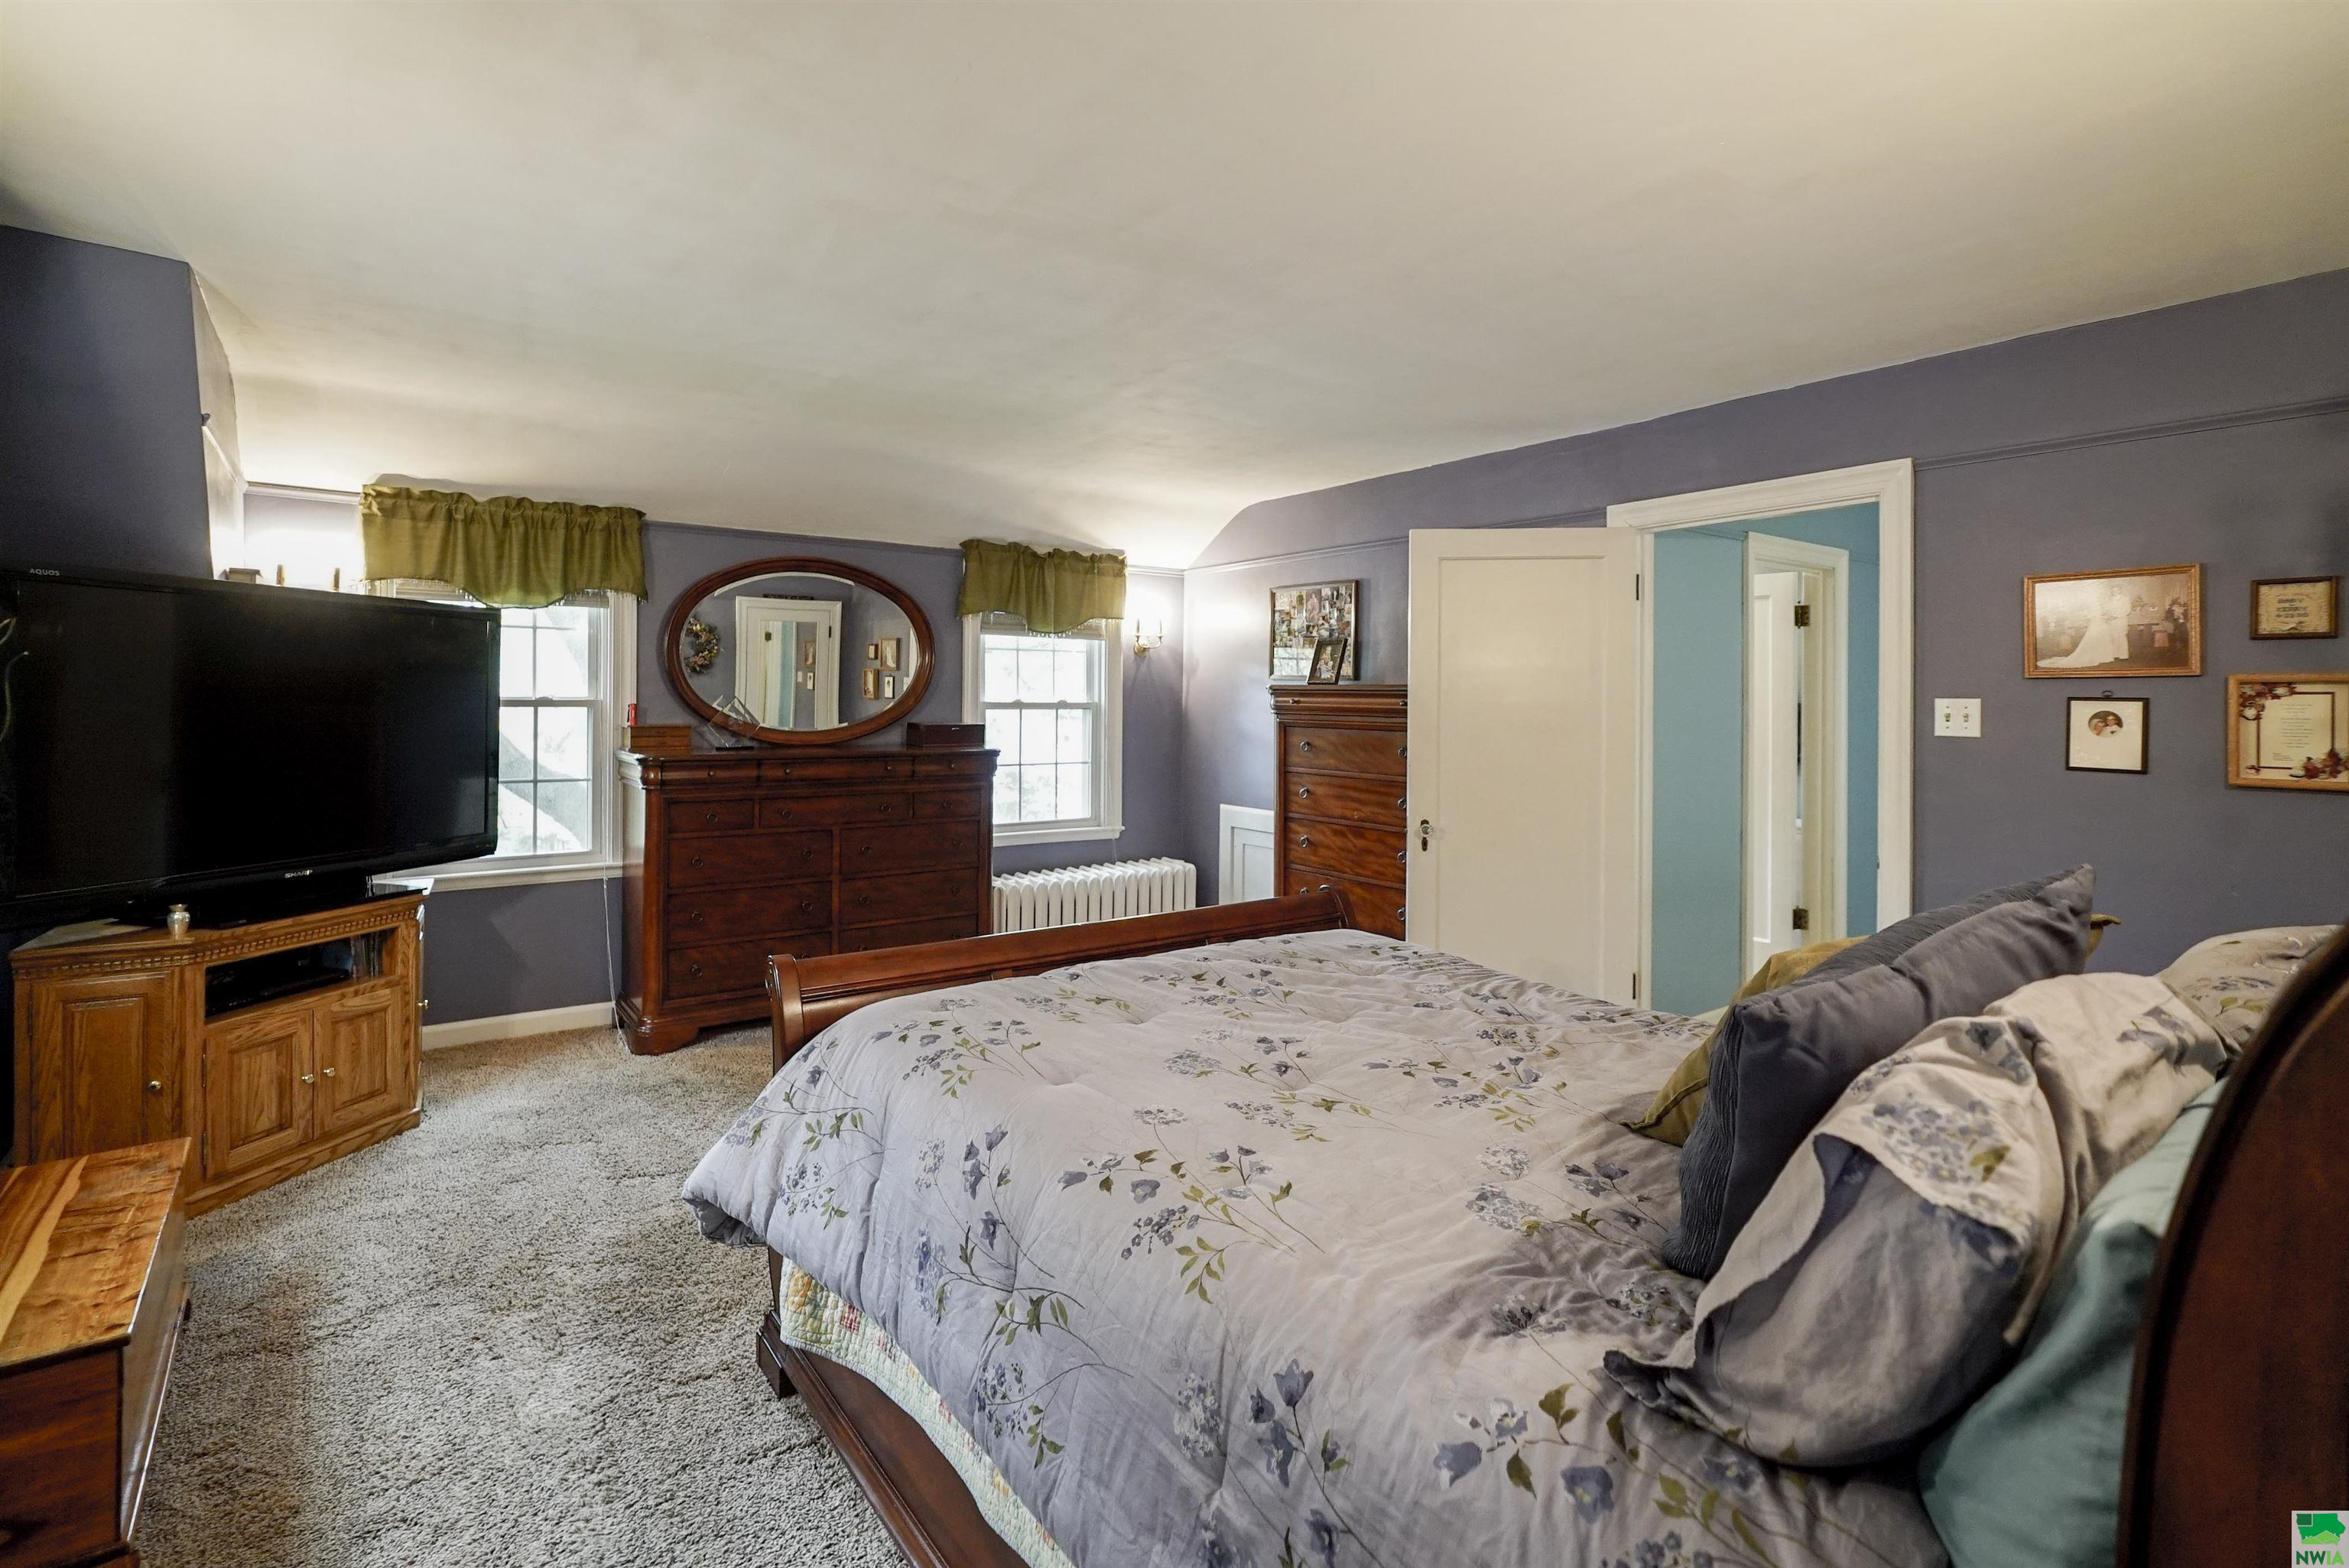 MLS# 814968 for Sale